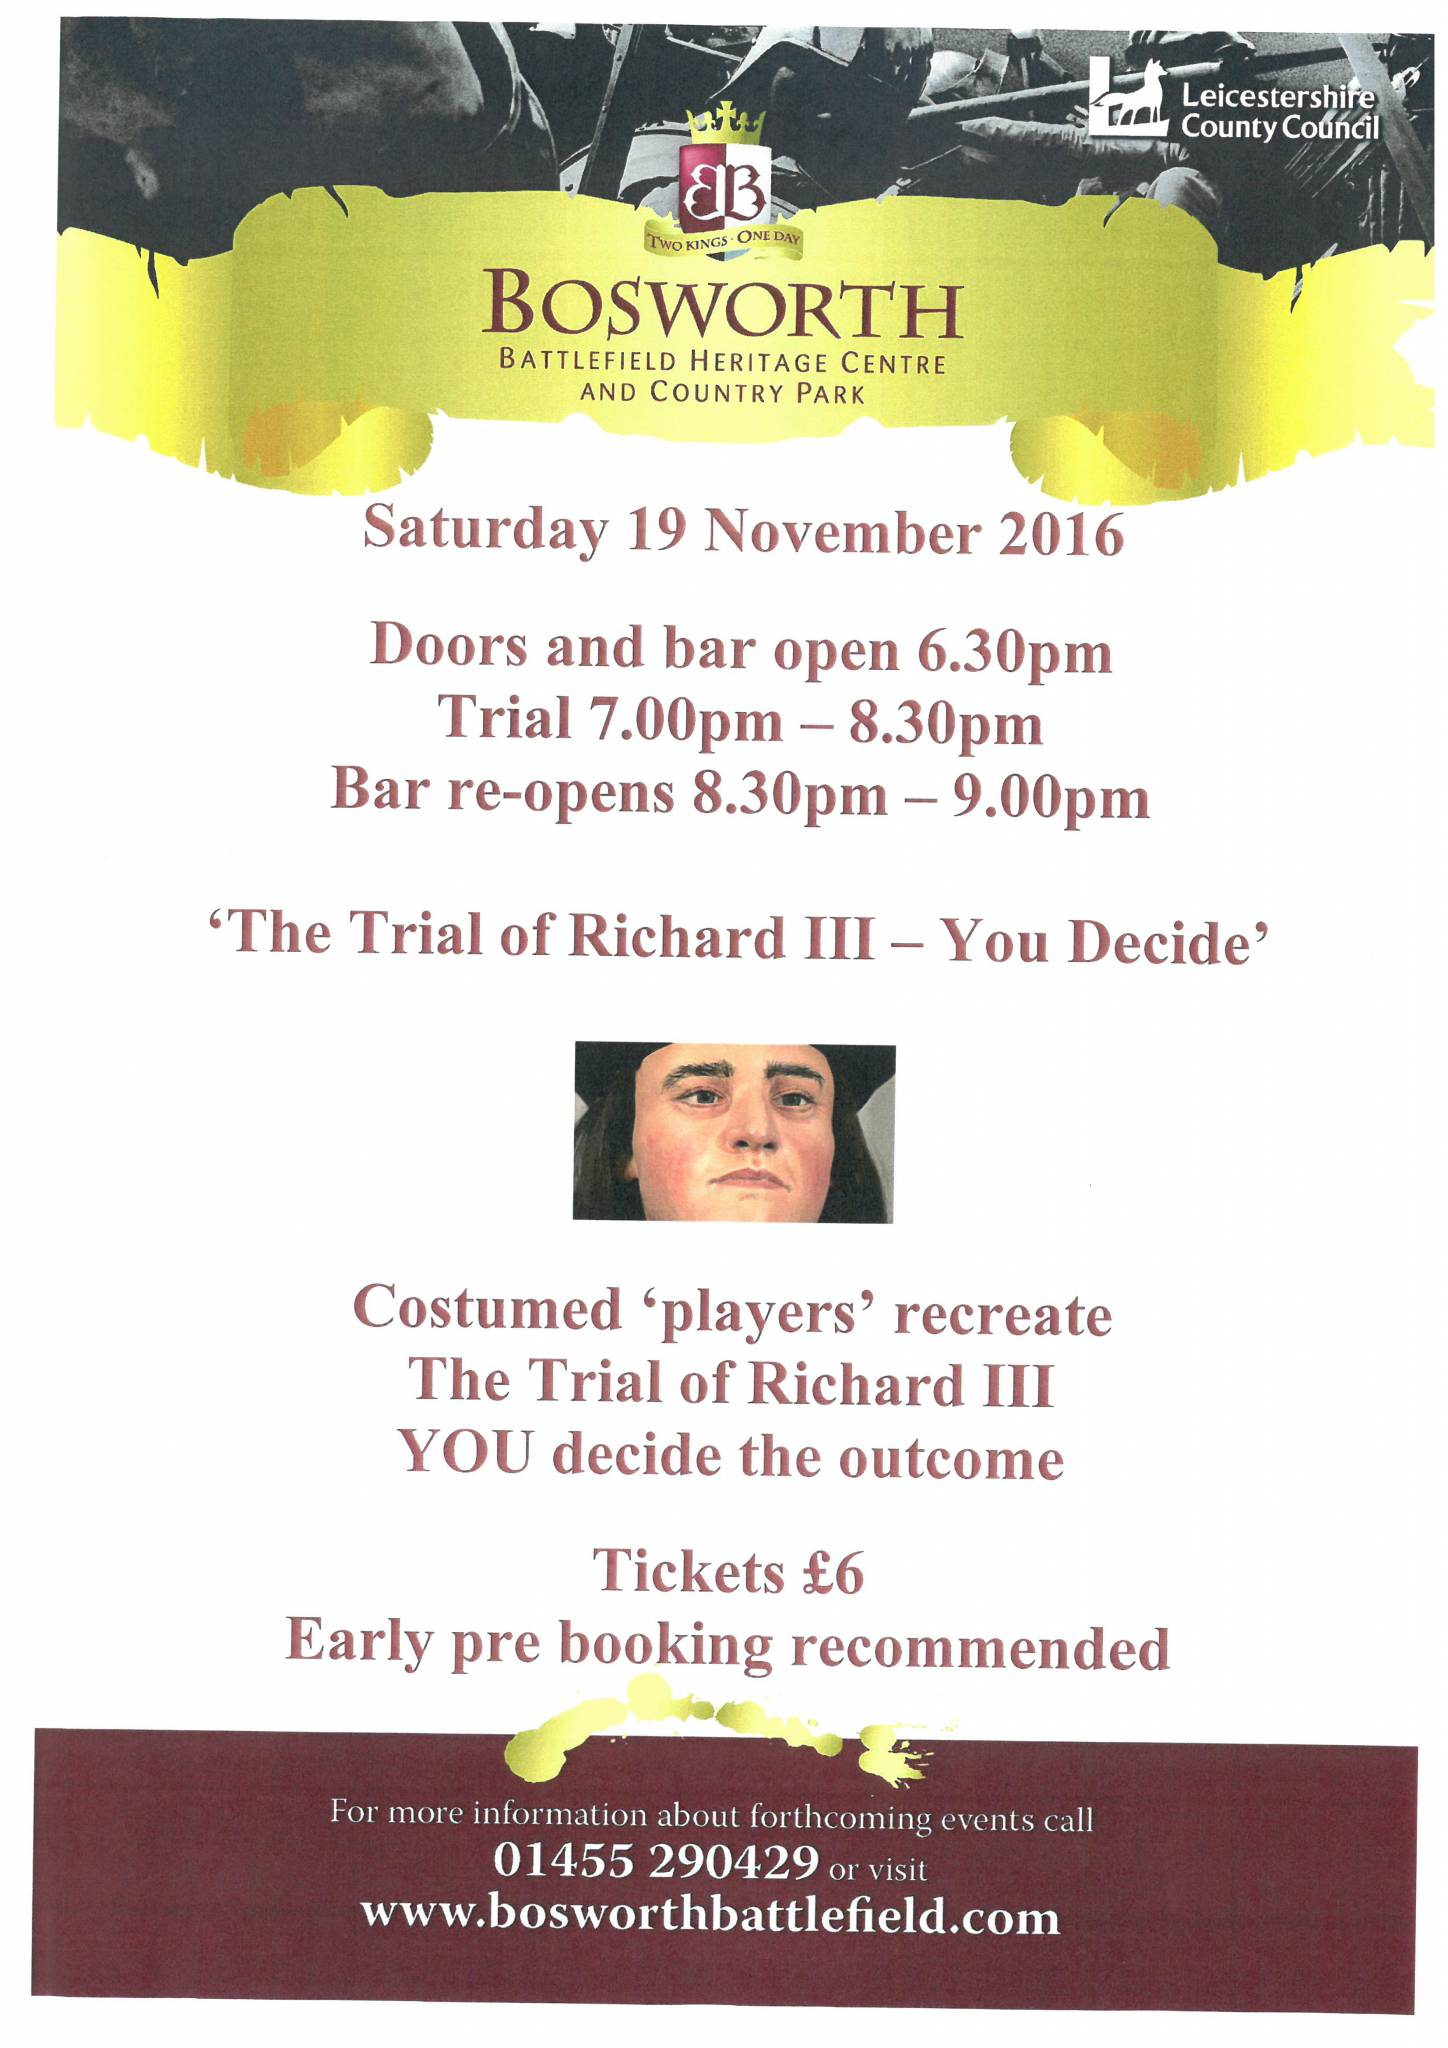 The Trial of Richard III - You Decide